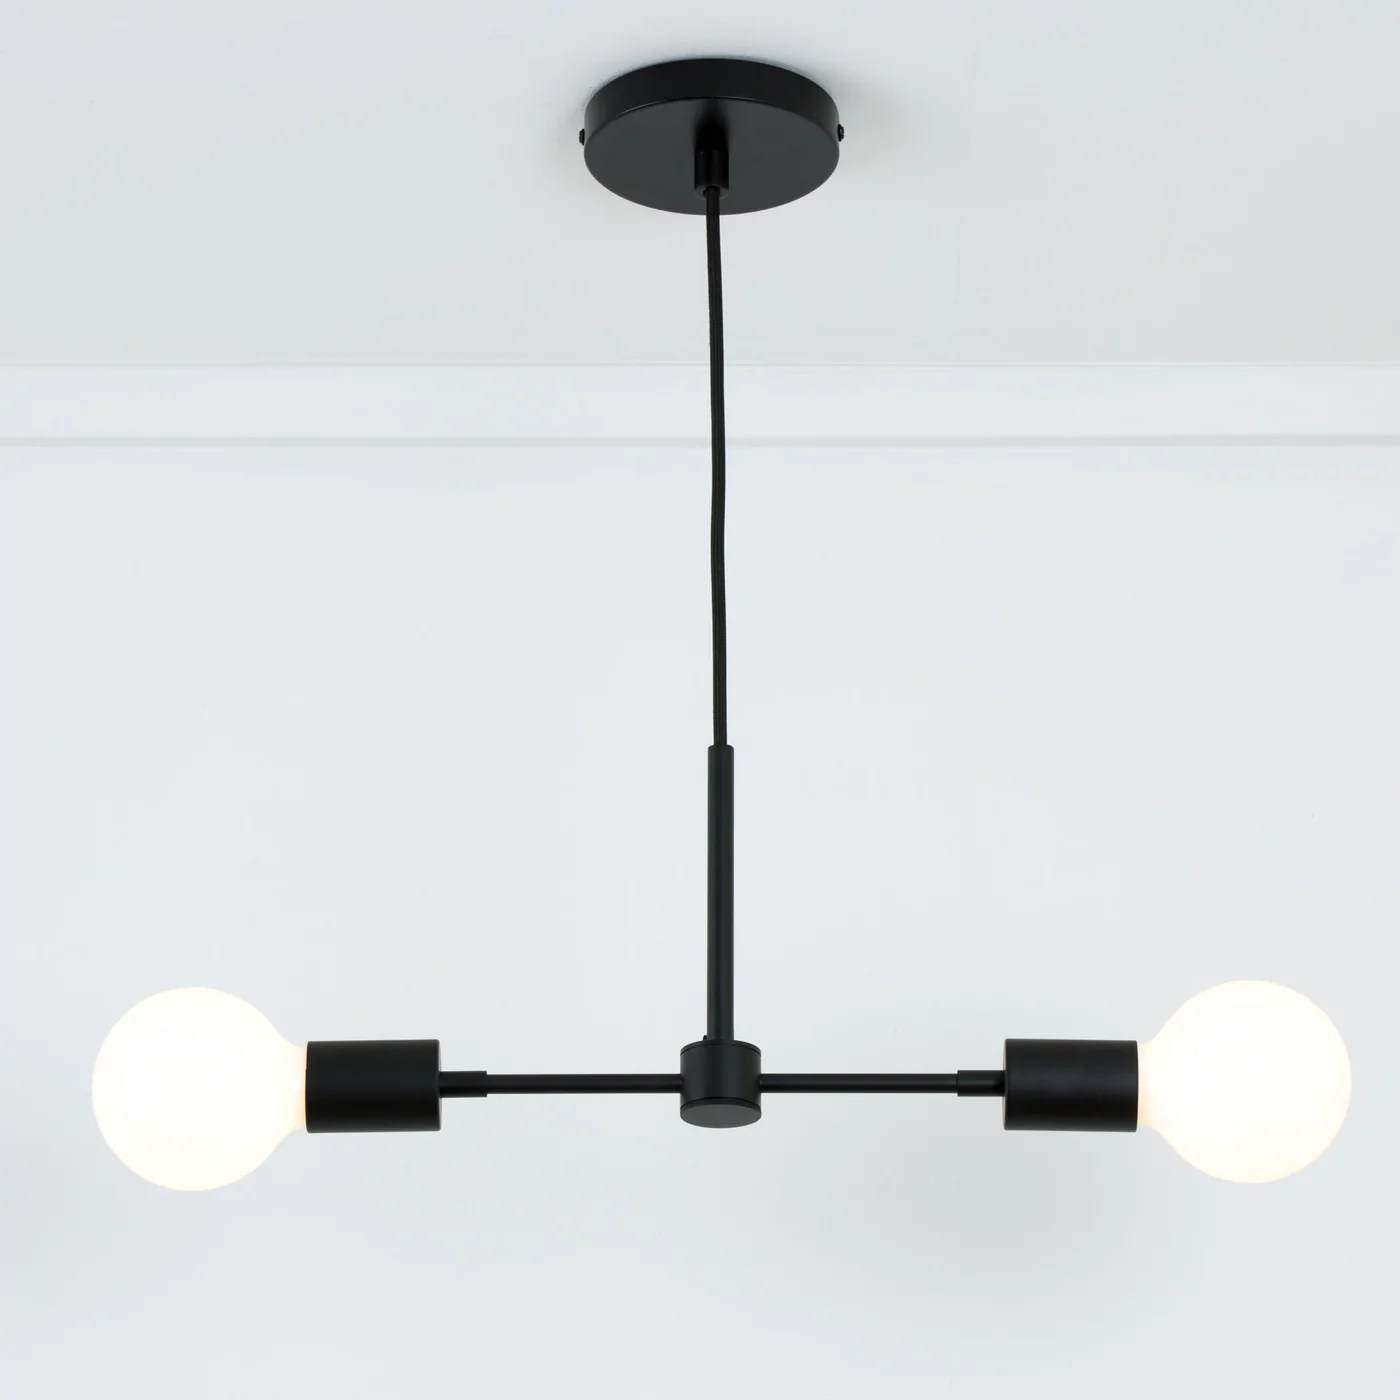 small resolution of pendant light fixture google patents on wiring led light fixtures wiring diagram go